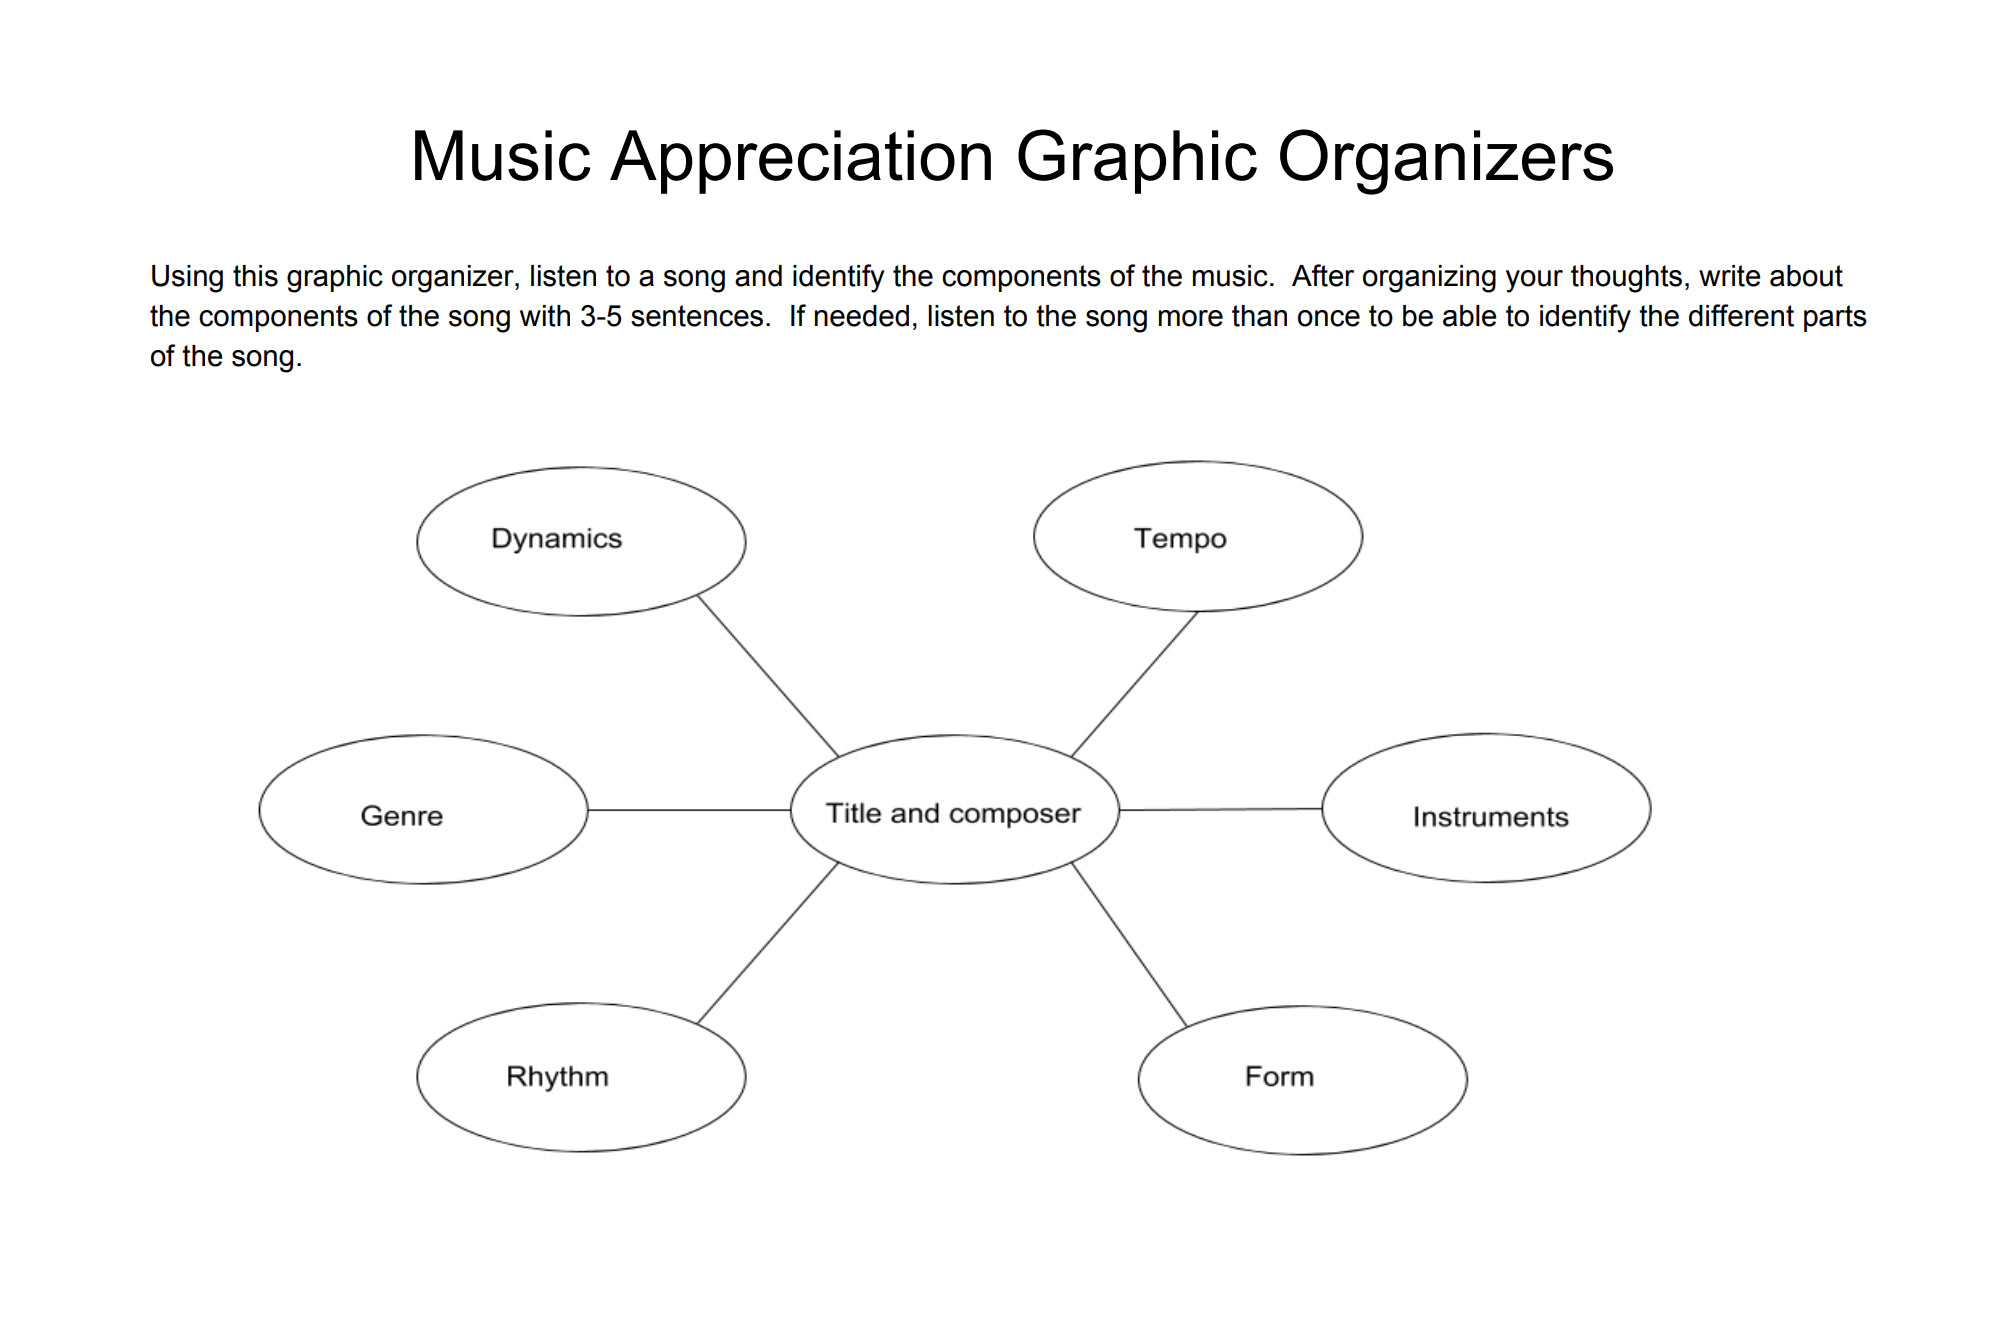 Music Appreciation Graphic Organizers